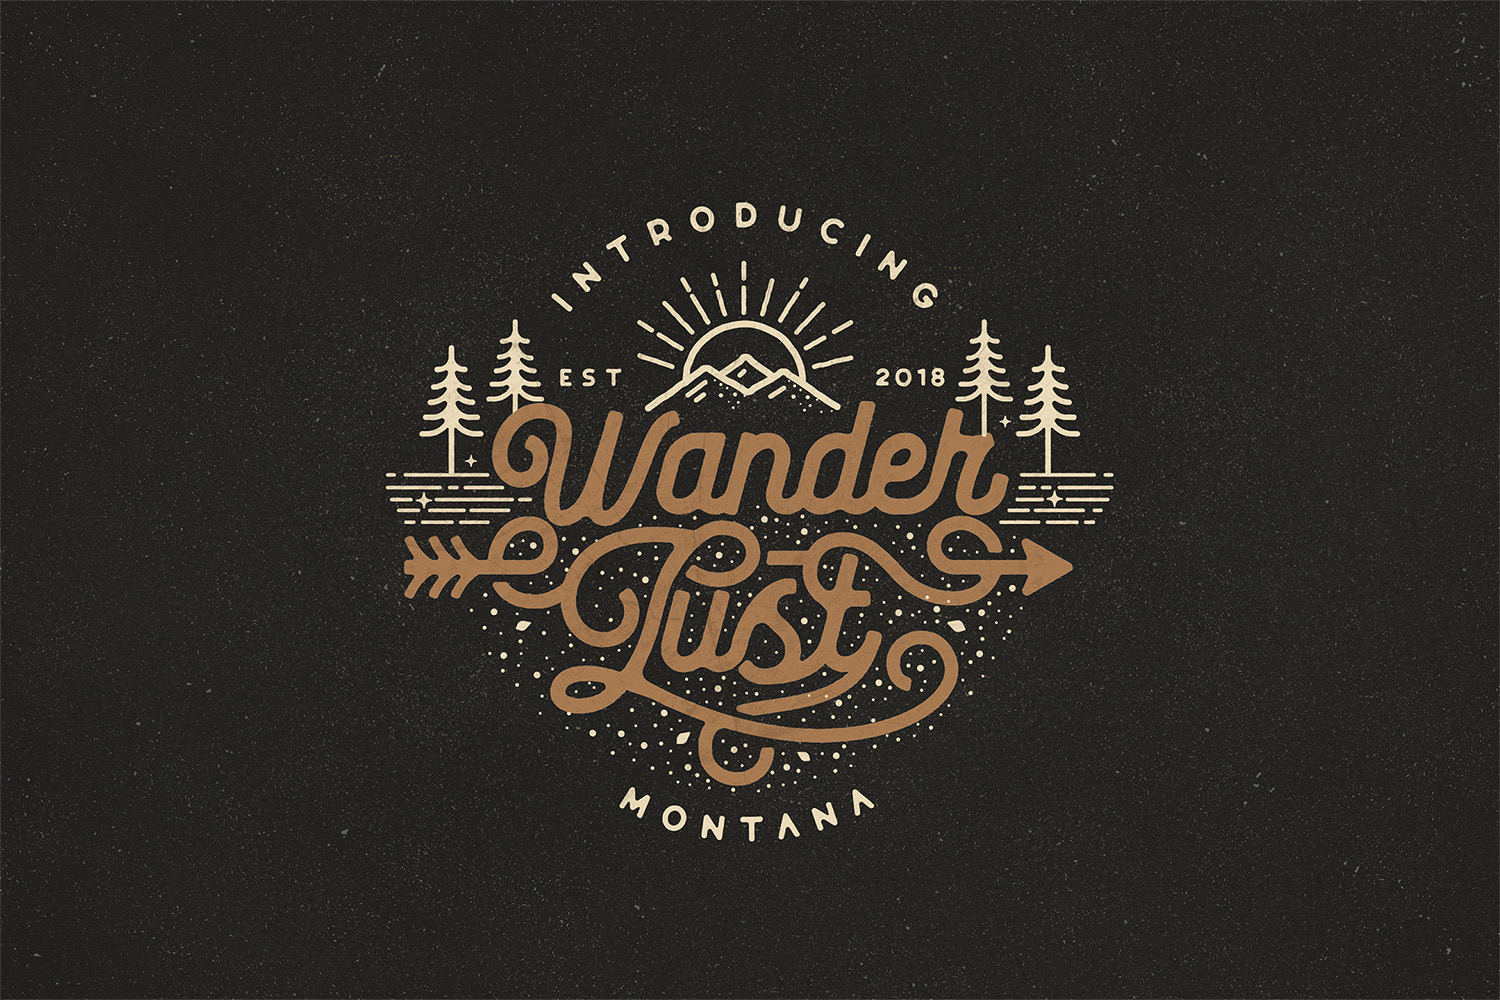 Riverfall Rounded Script and Sans 4 Typeface Ver.1 example image 13